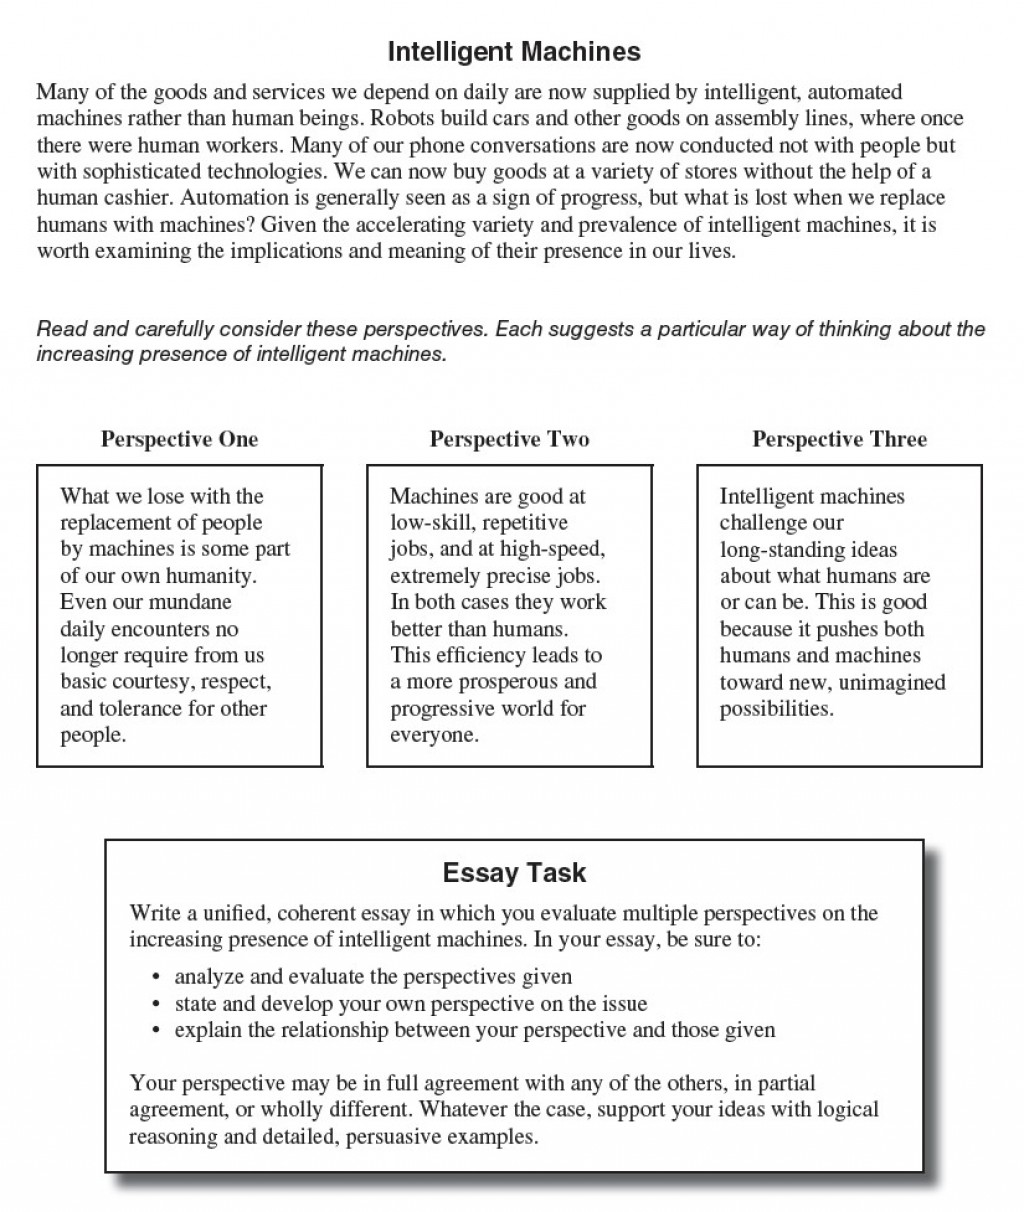 002 Act Prompt Essay Fearsome Scoring Rubric Topics Writing Format Large